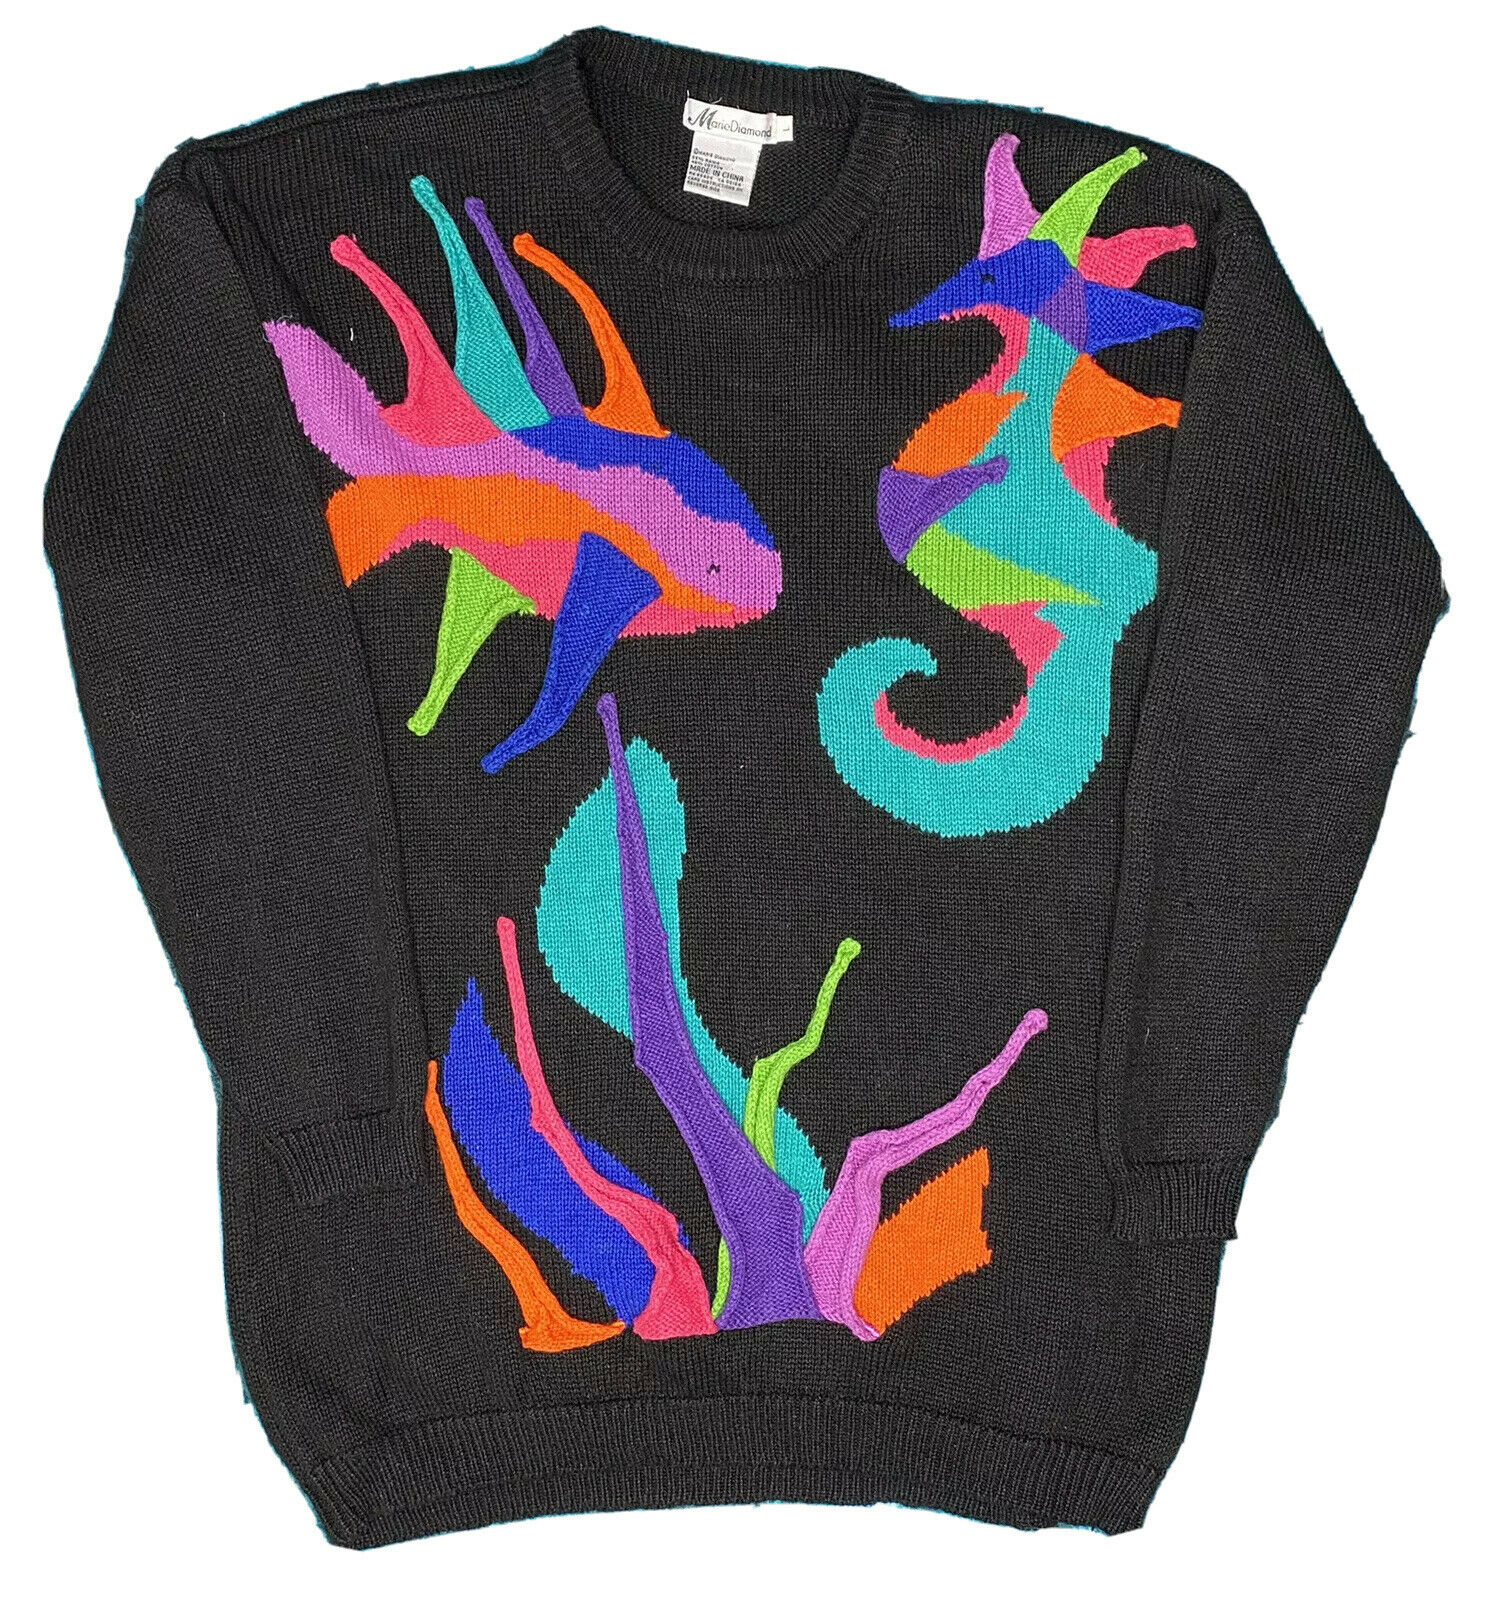 Vintage Marie Diamond Sweater 80s 90s Large Crazy Neon 3D Fish Ugly Pull Over